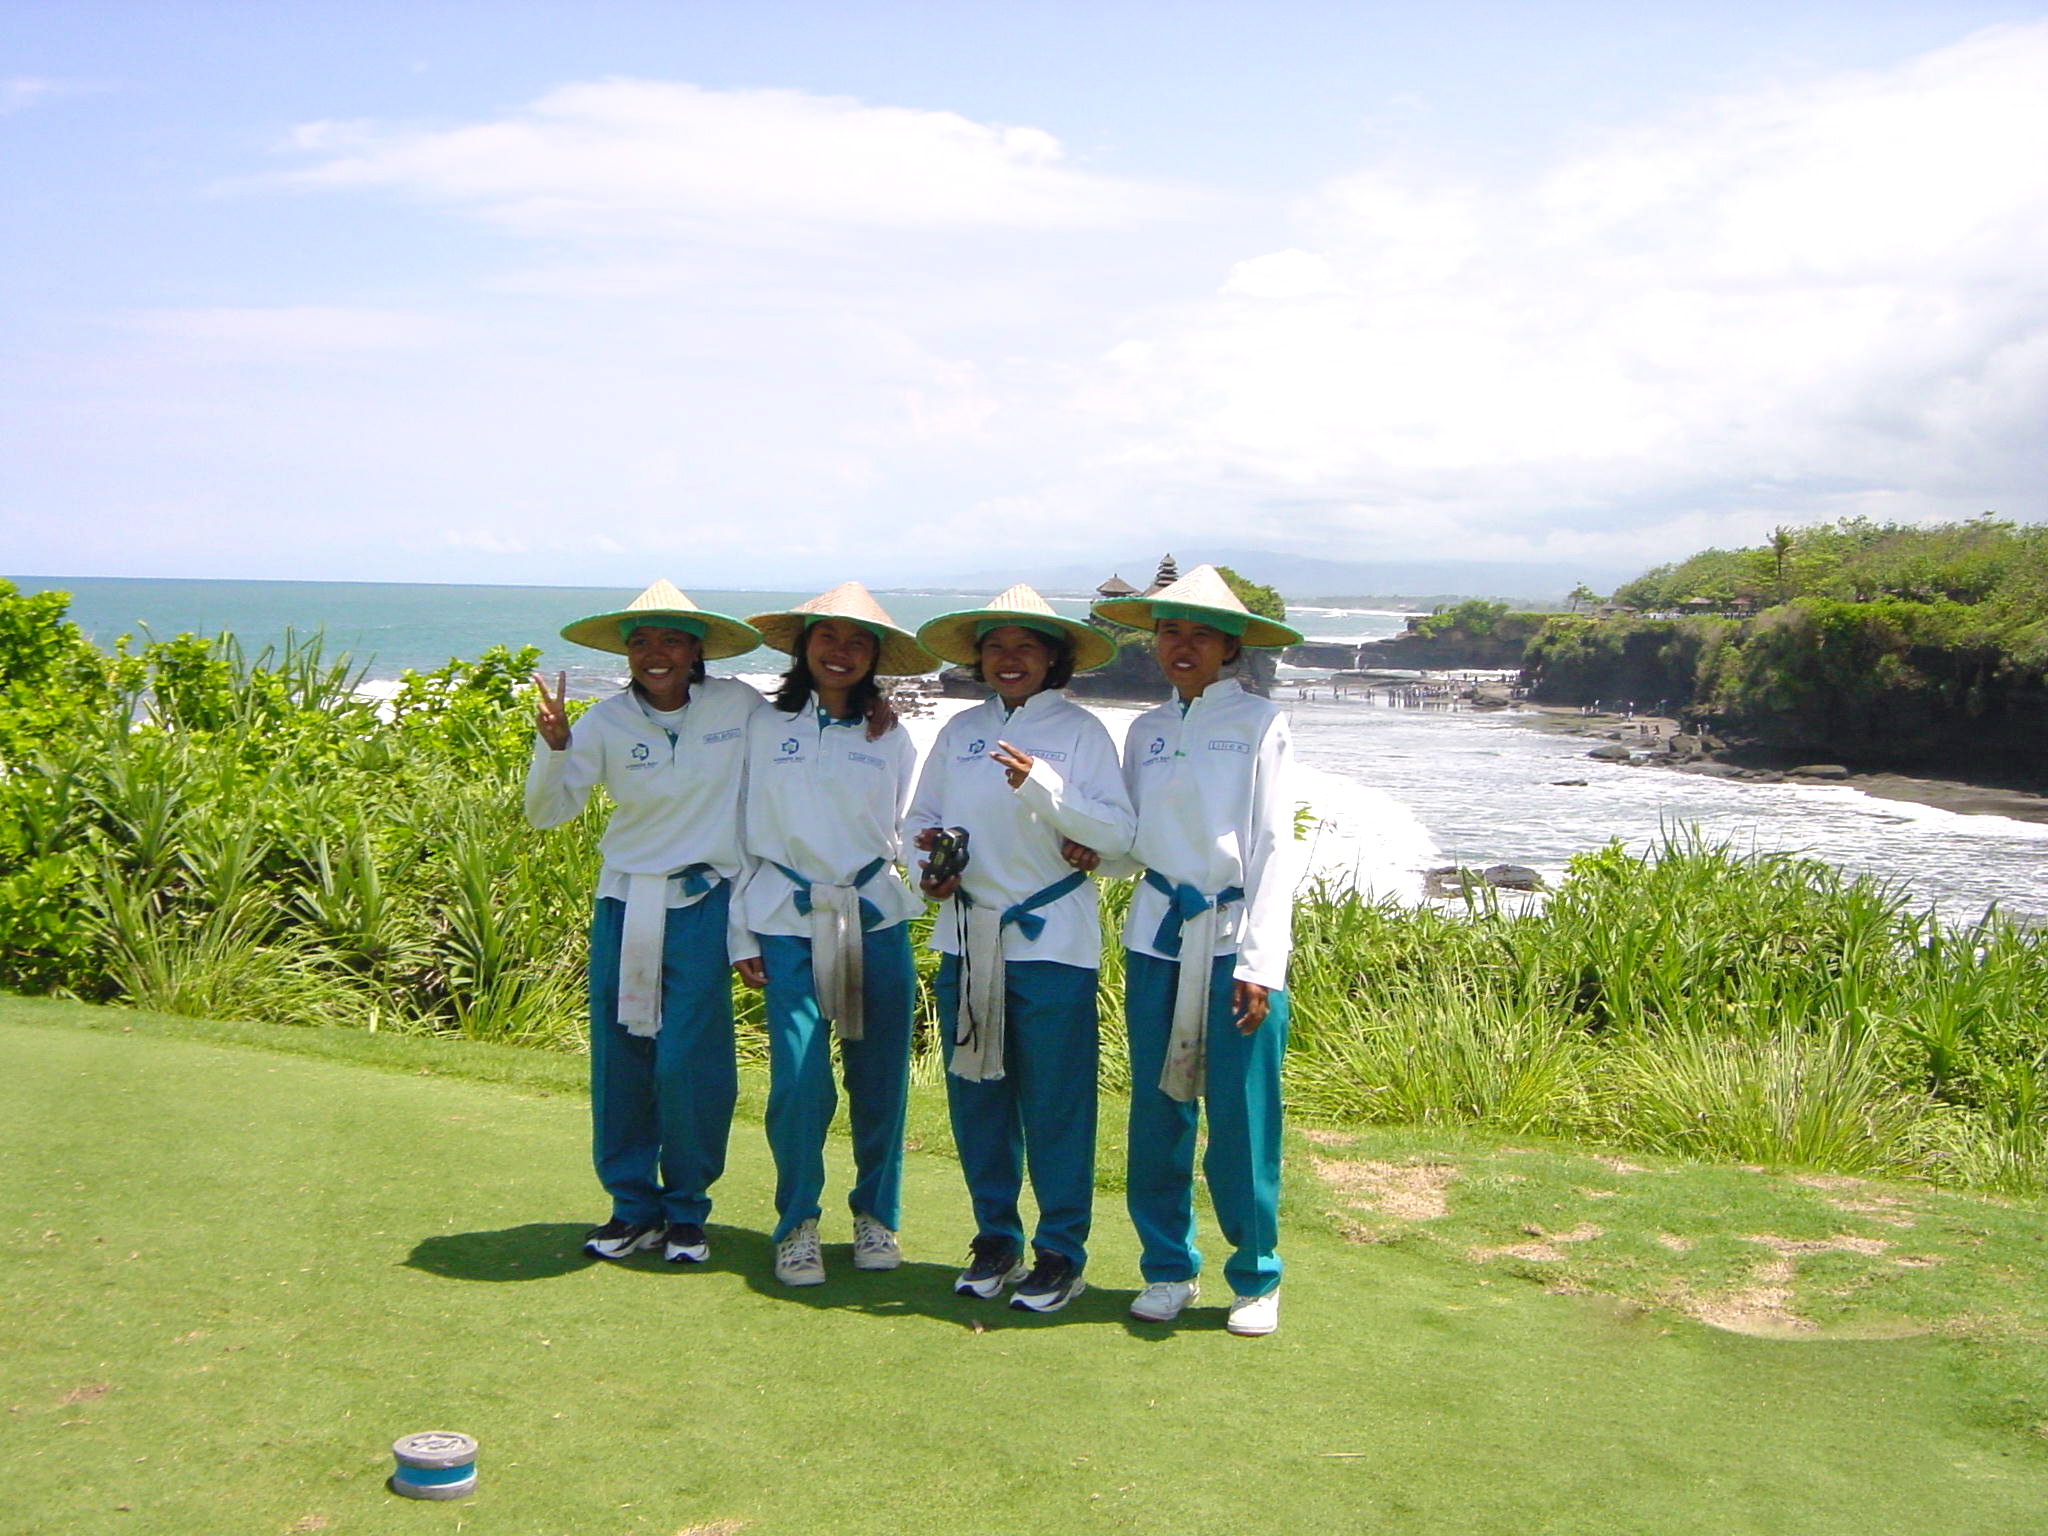 golf industry in indonesia indonesian About golf history of golf indonesia golf association jakarta selatan: zip code: 12310: country: indonesia: flag: telephone +62 21 7590 8206: fax.